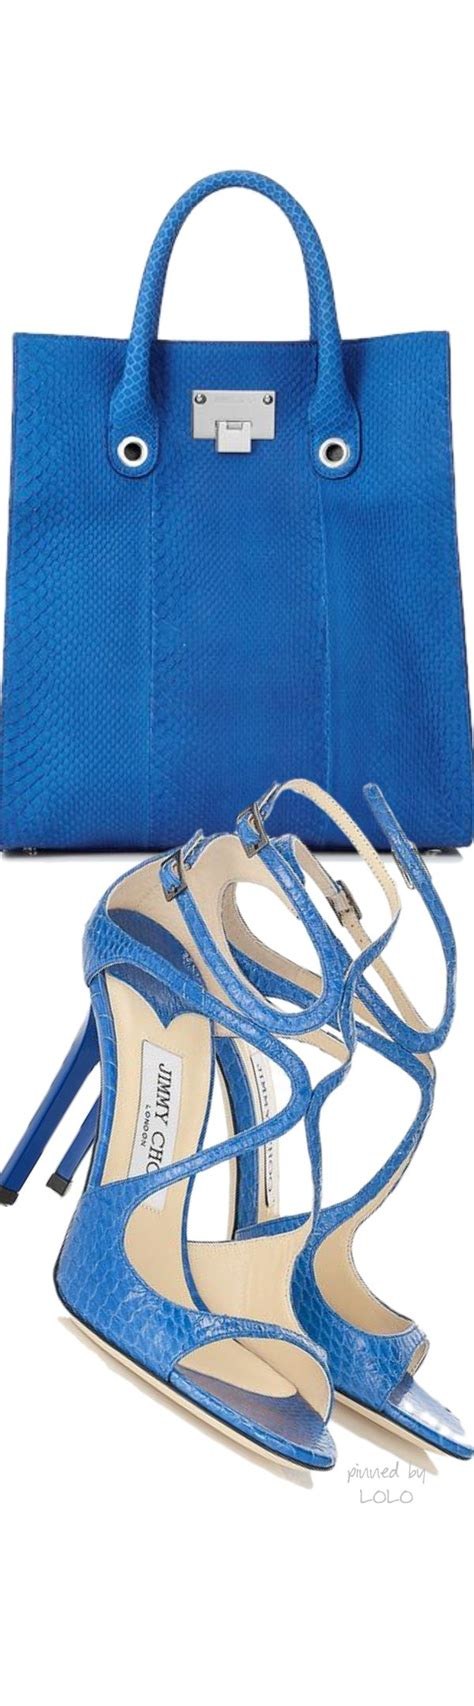 Promo Handbag Dc Shinx 278 best moody blues images on blue moody blues and color blue